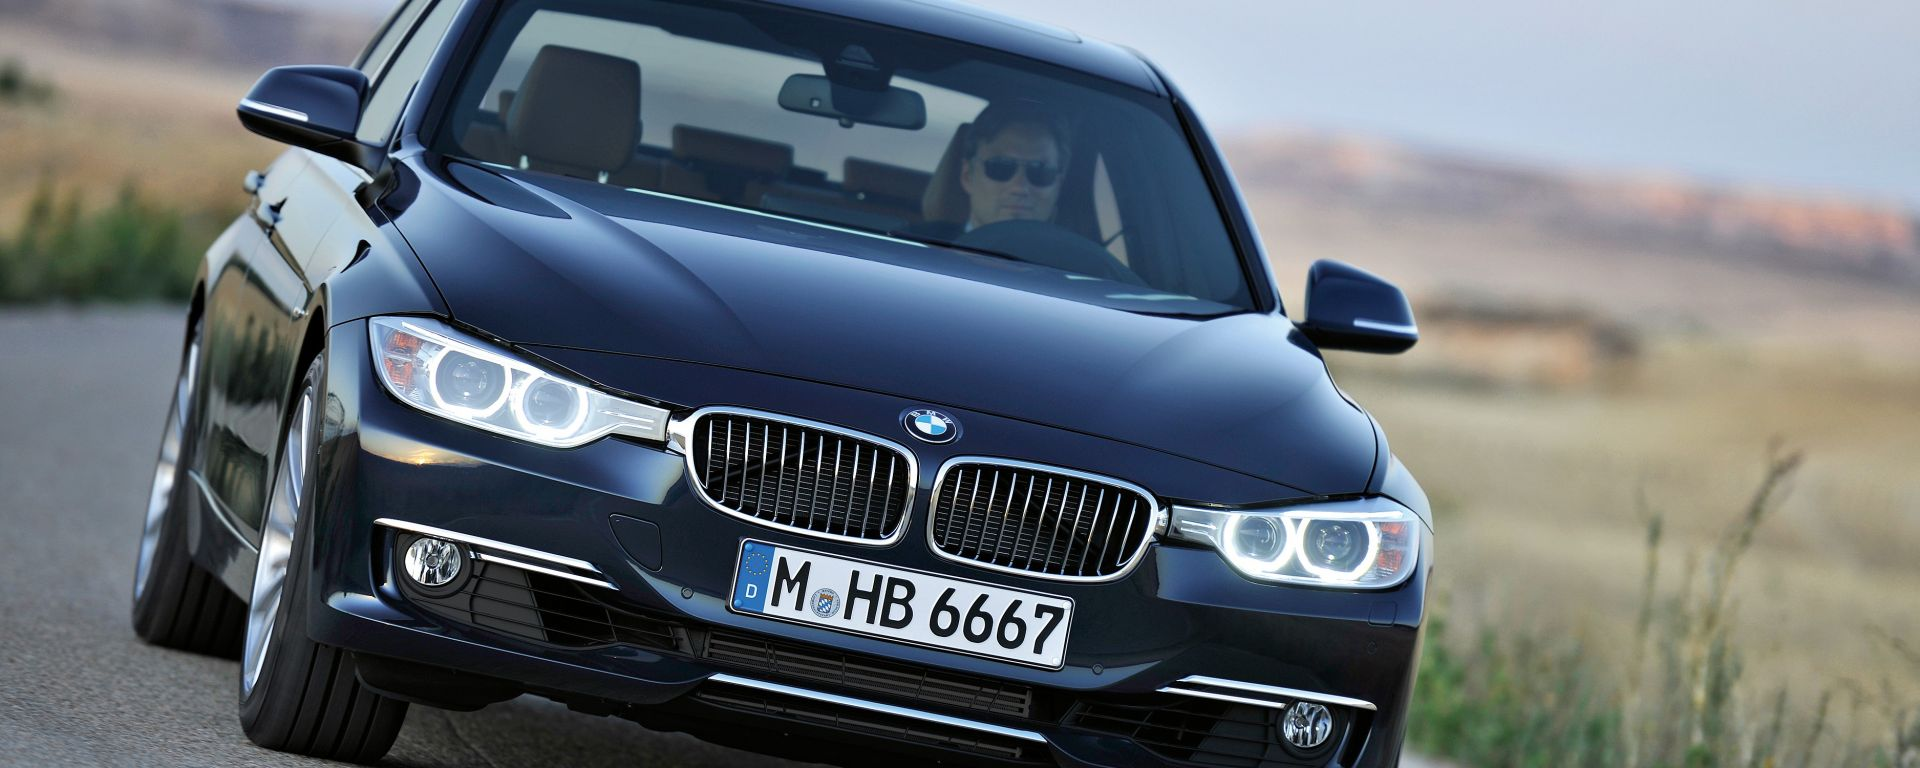 Bmw Serie 3 2012: la prova ora anche in video